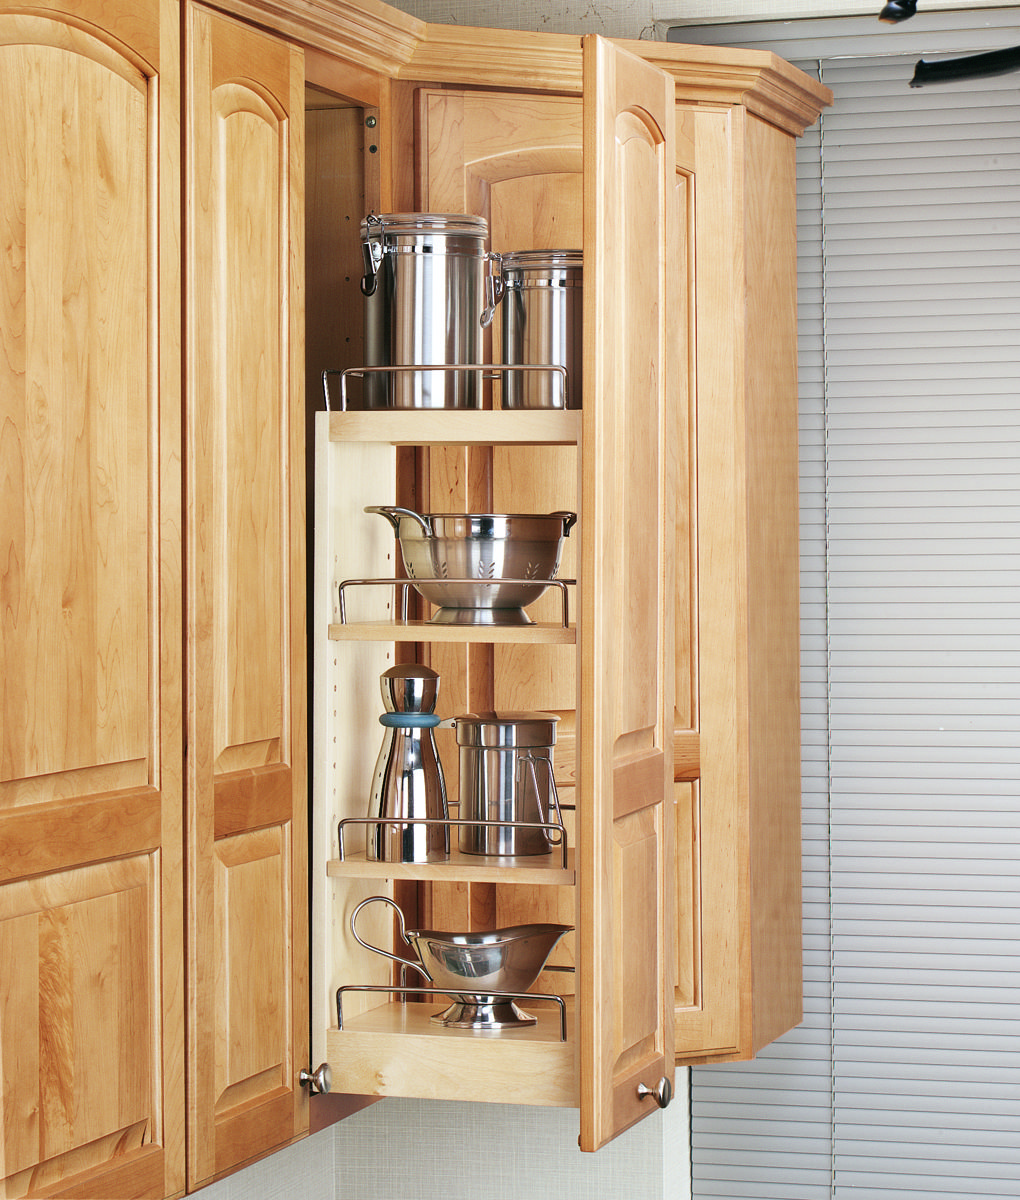 Rev A Shelf 8 Inch Wall Cabinet Organizer Natural 448 Wc 8c Kitchen Cabinet Remodel Wall Cabinet Upper Kitchen Cabinets